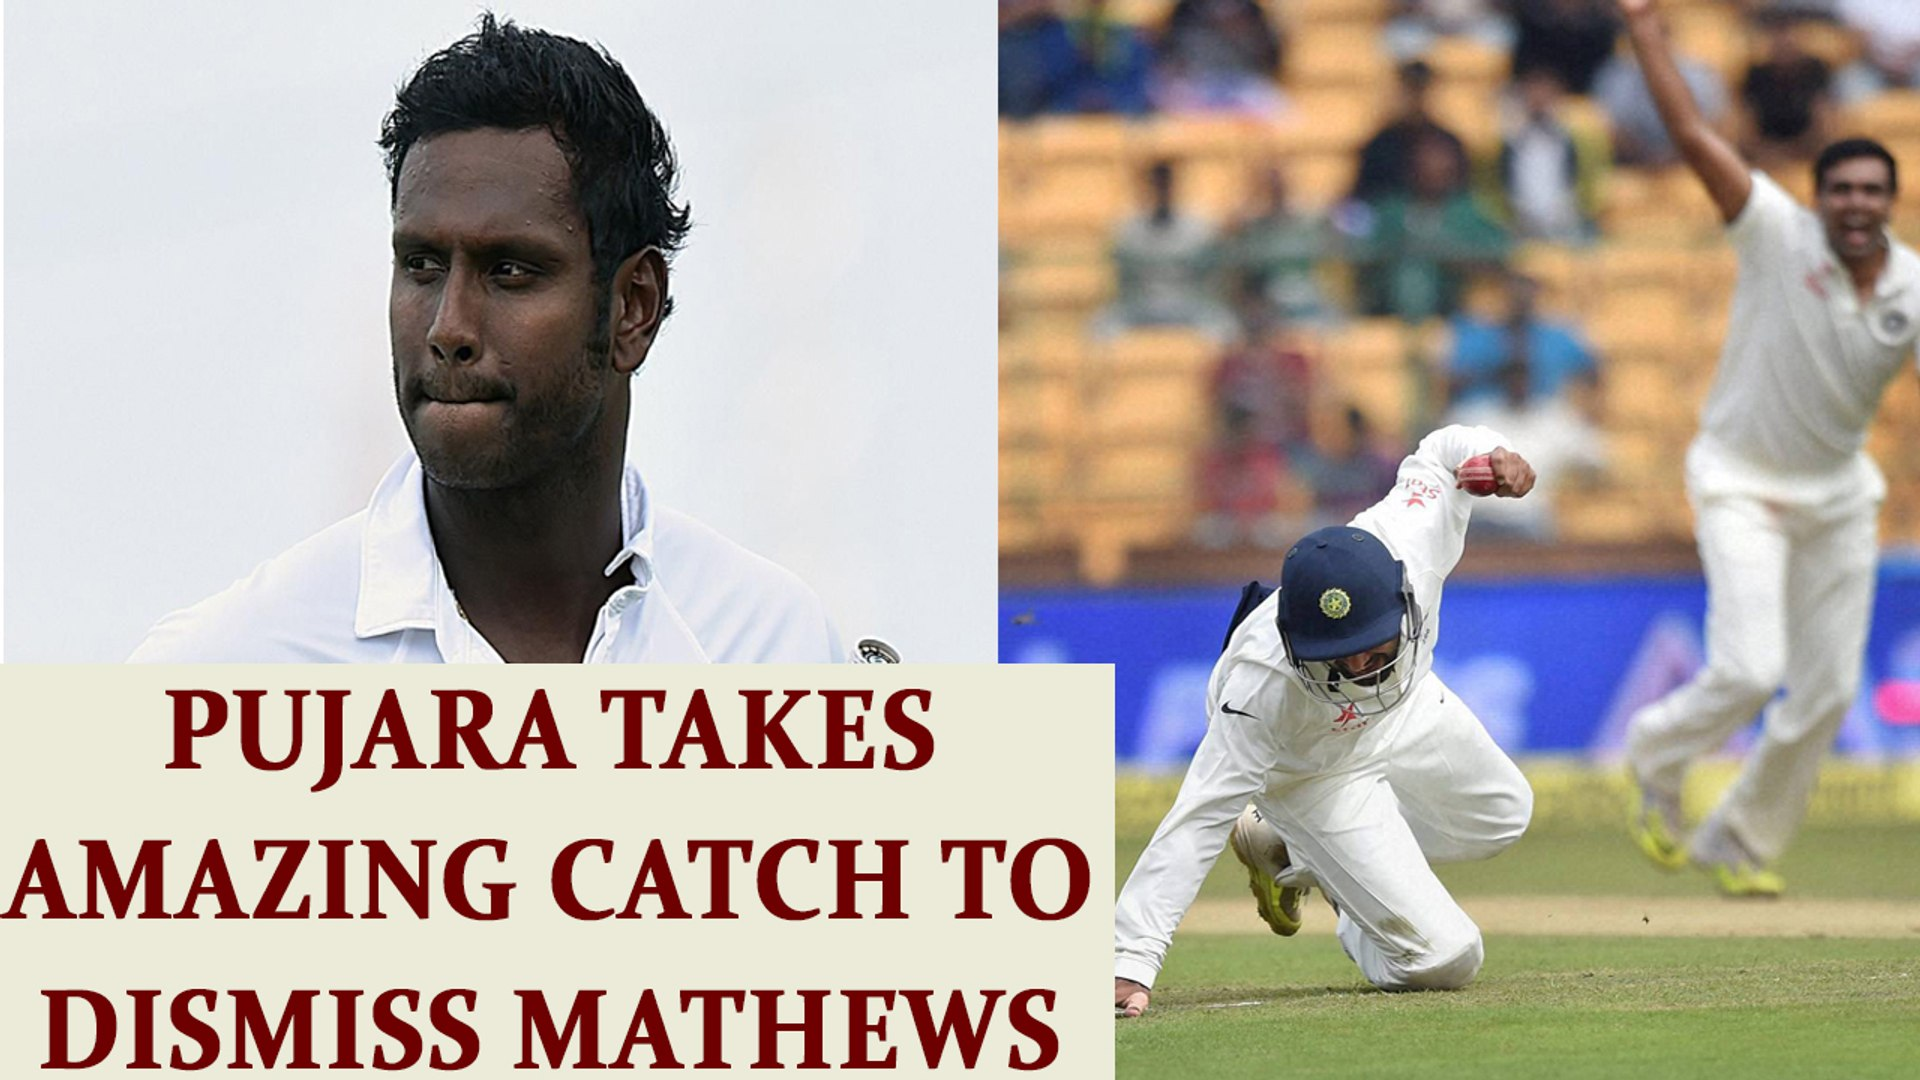 India vs Sri Lanka : Cheteshwar Pujara takes superb catch to get rid off Mathews | Oneindia News